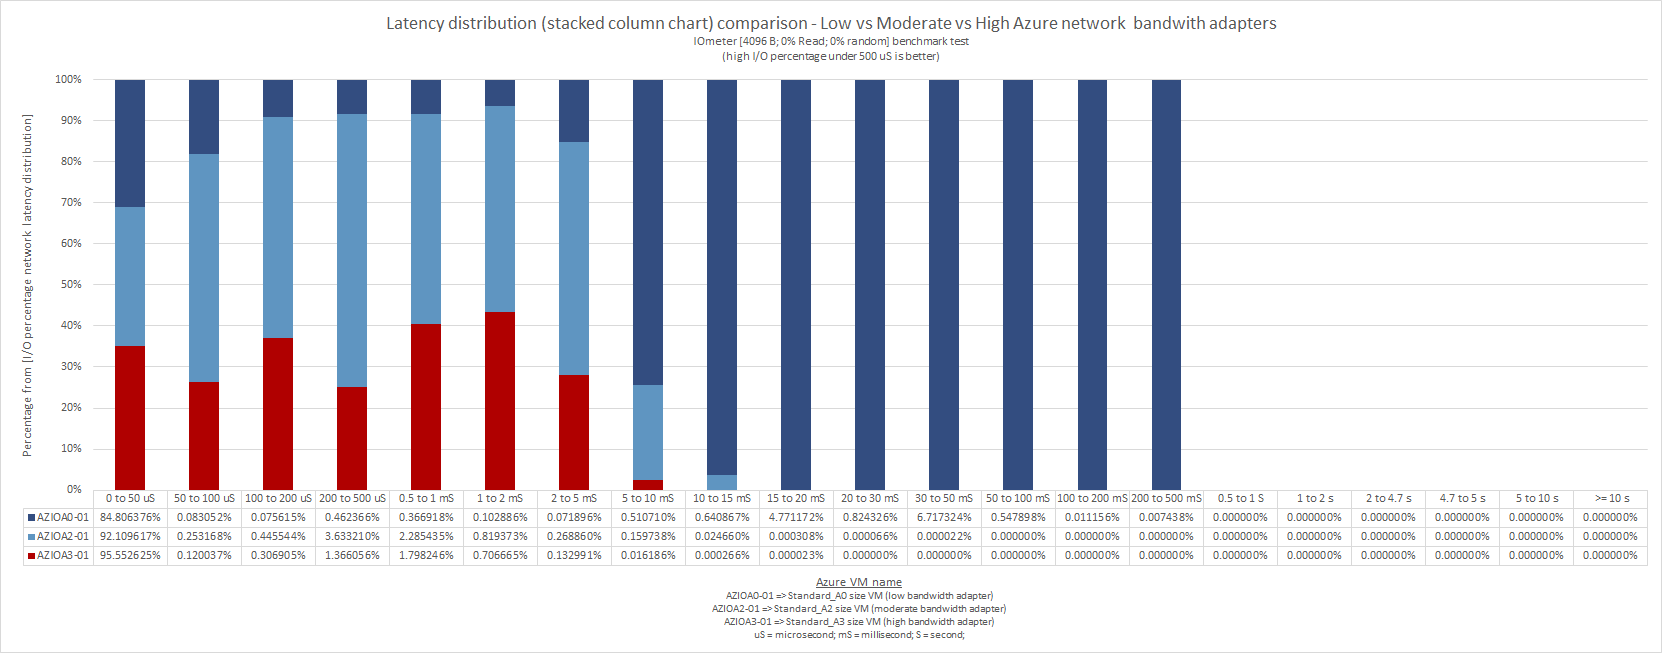 what_does_microsoft_means_by_low_moderate_high_very_high_extremely_high_azure_network_bandwidth_49